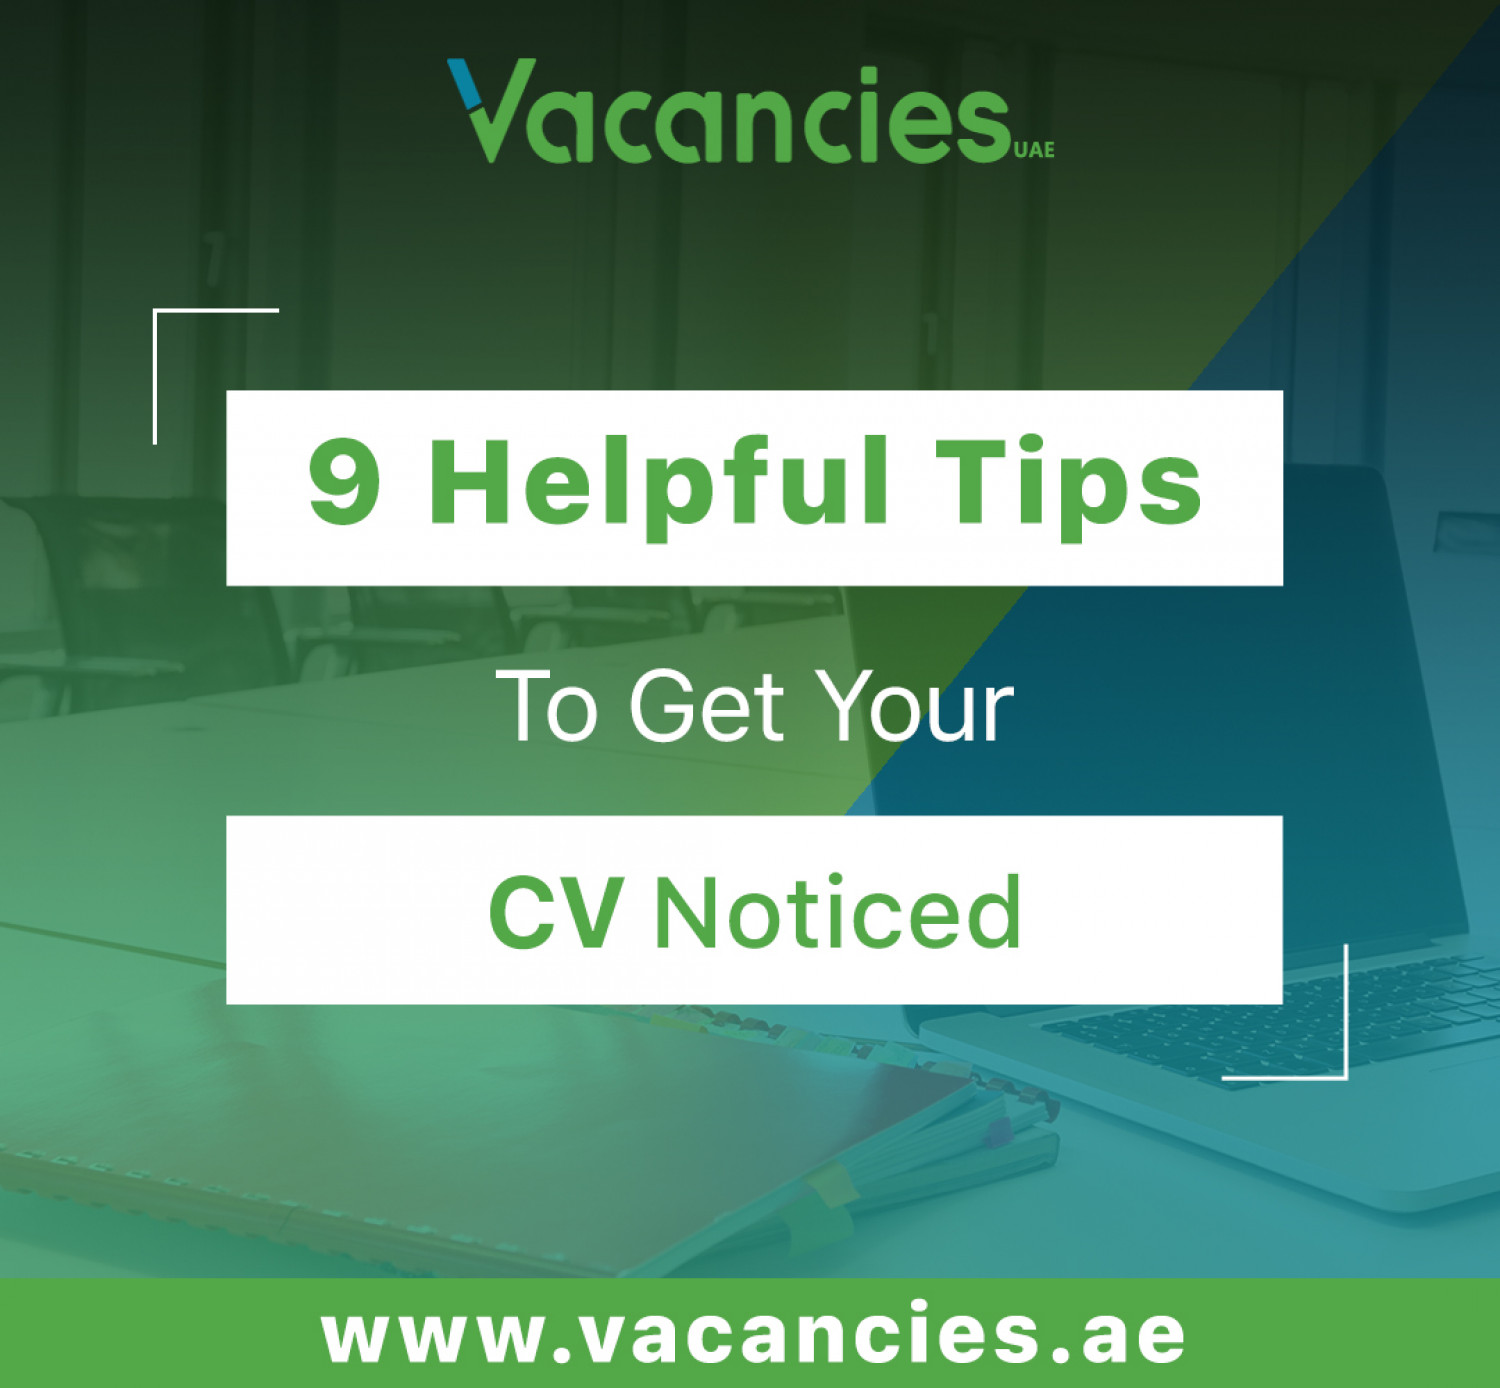 9 Helpful Tips to get your CV noticed Infographic